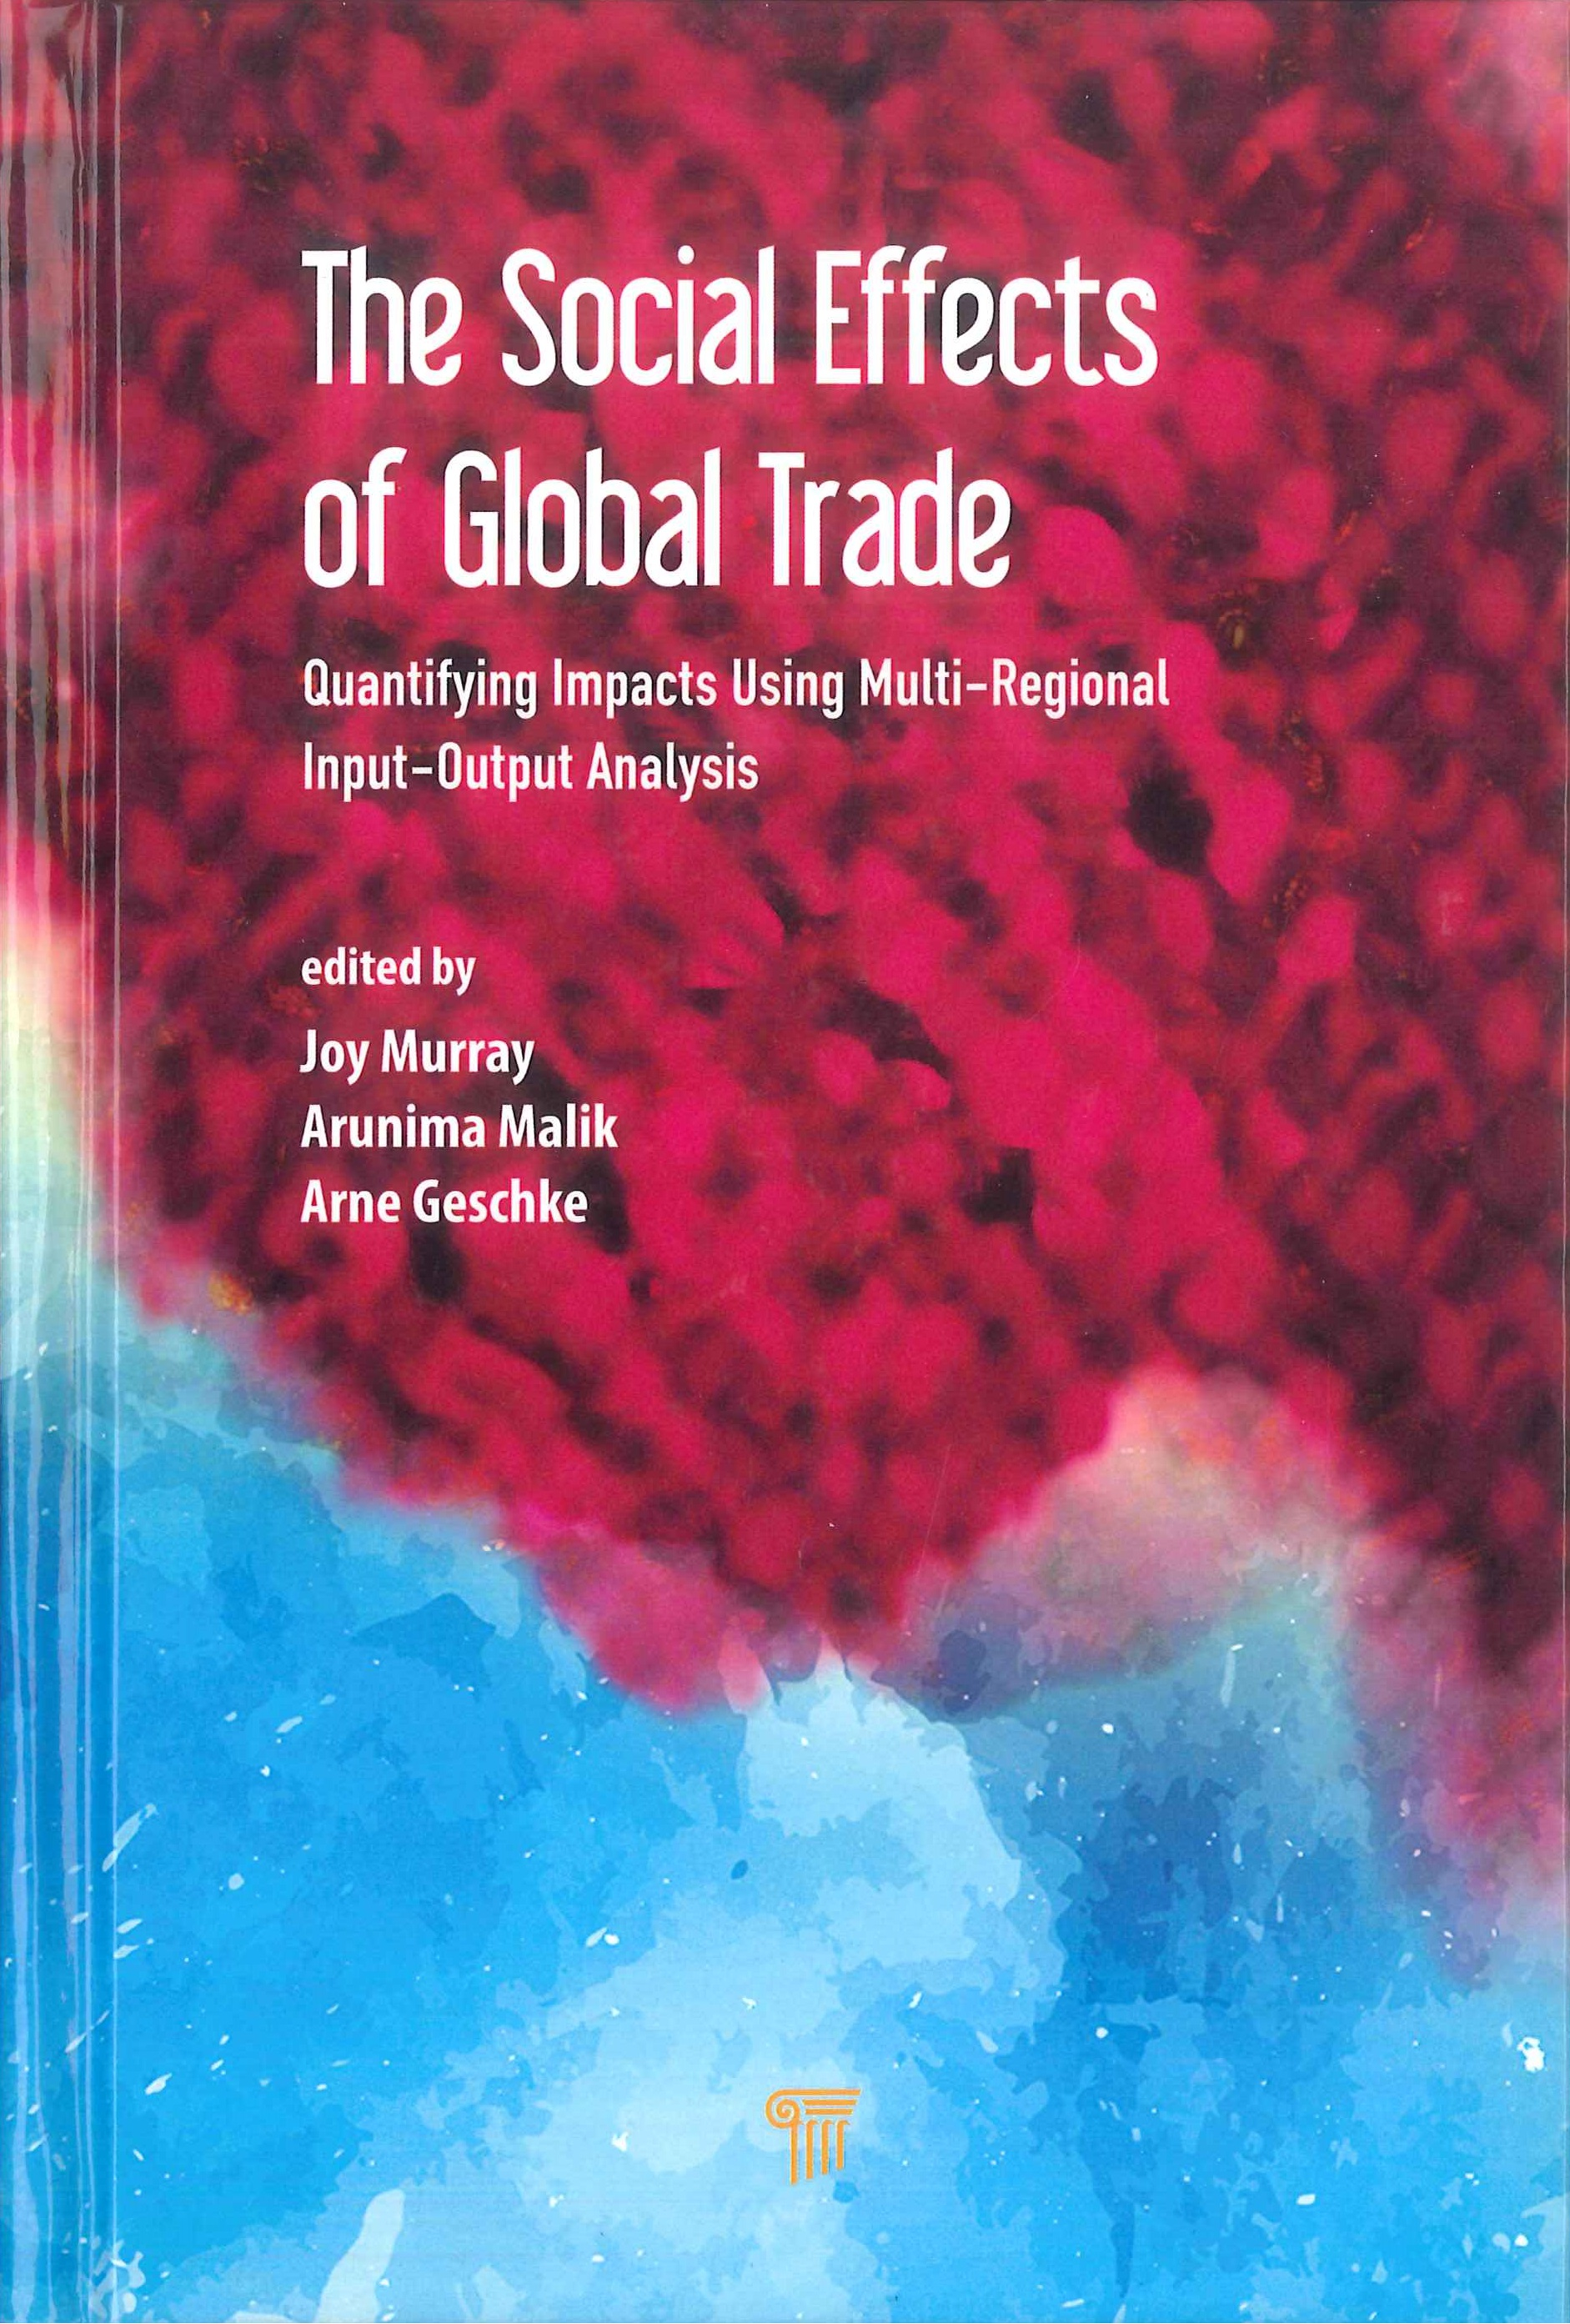 The social effects of global trade:quantifying impacts using multi-regional input-output analysis